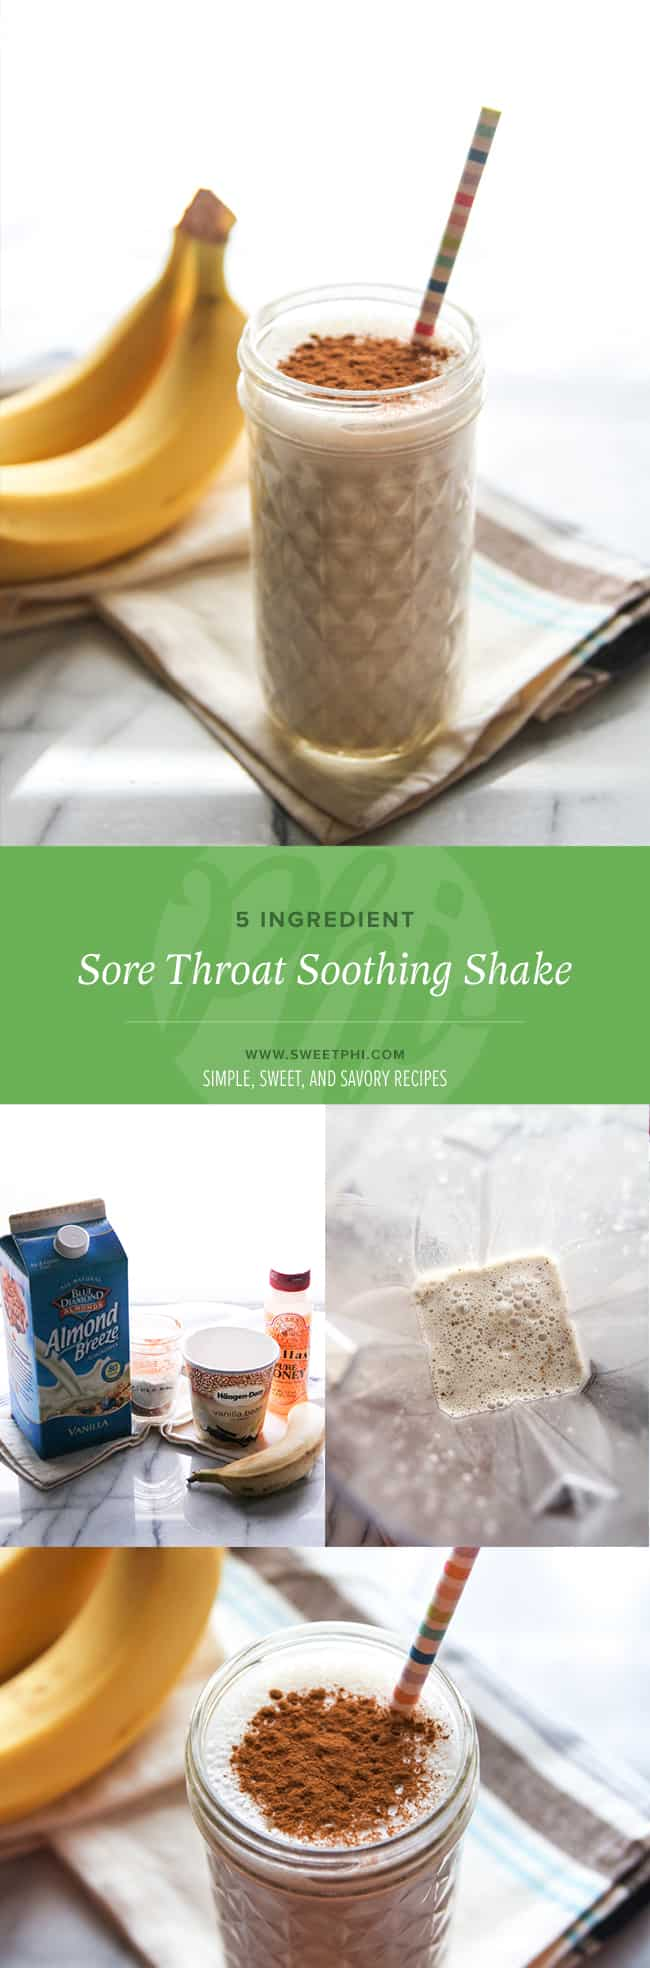 The best sore throat soothing shake you need